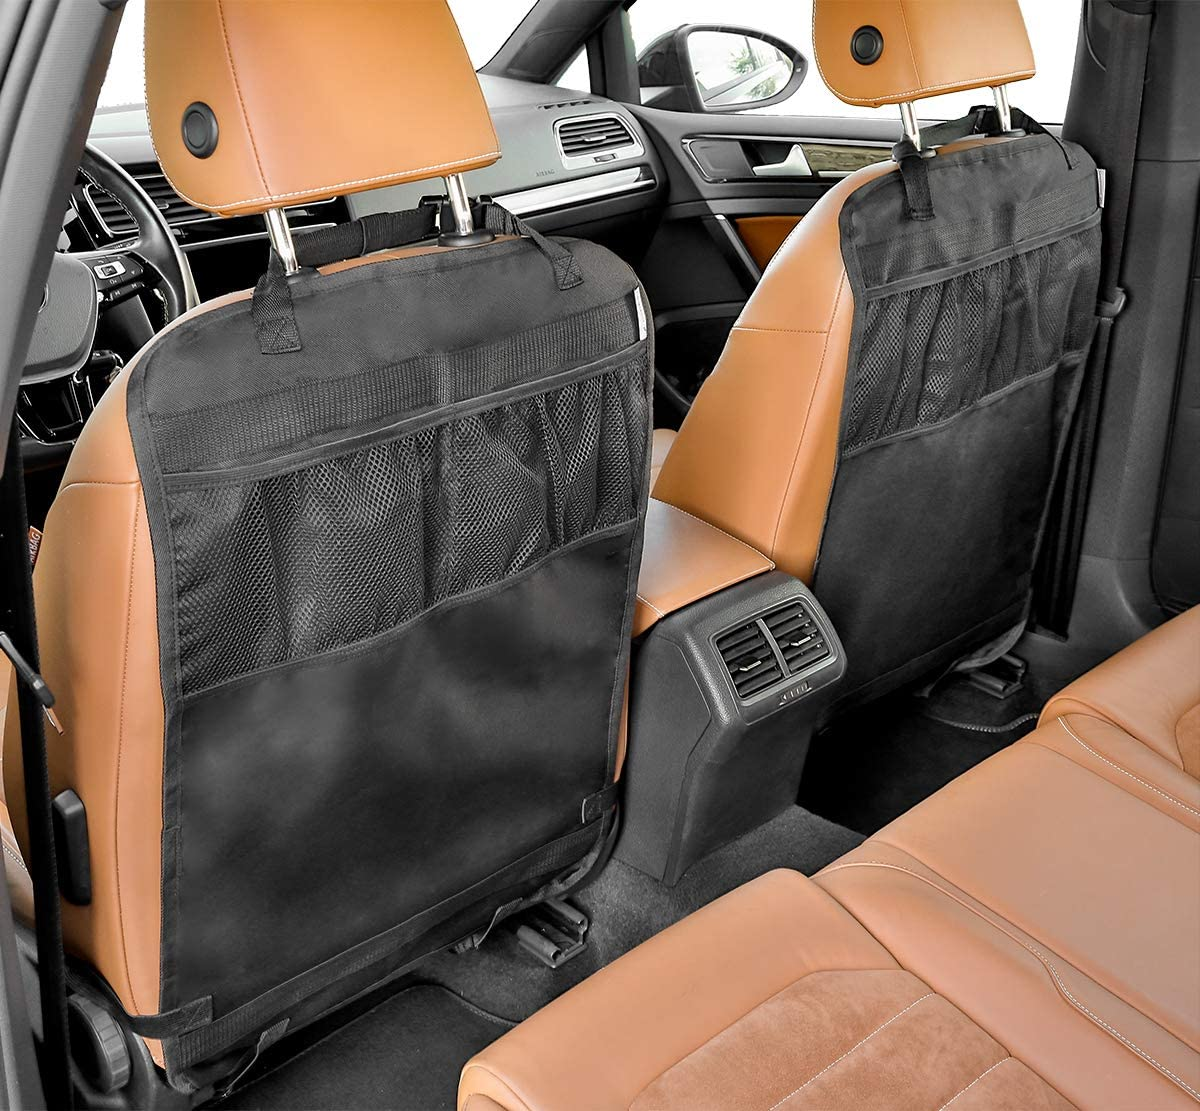 Waterproof and Stain Resistant Seat Protectors Back Seat Car Organiser LIONSTRONG Kick Mats 2-SET